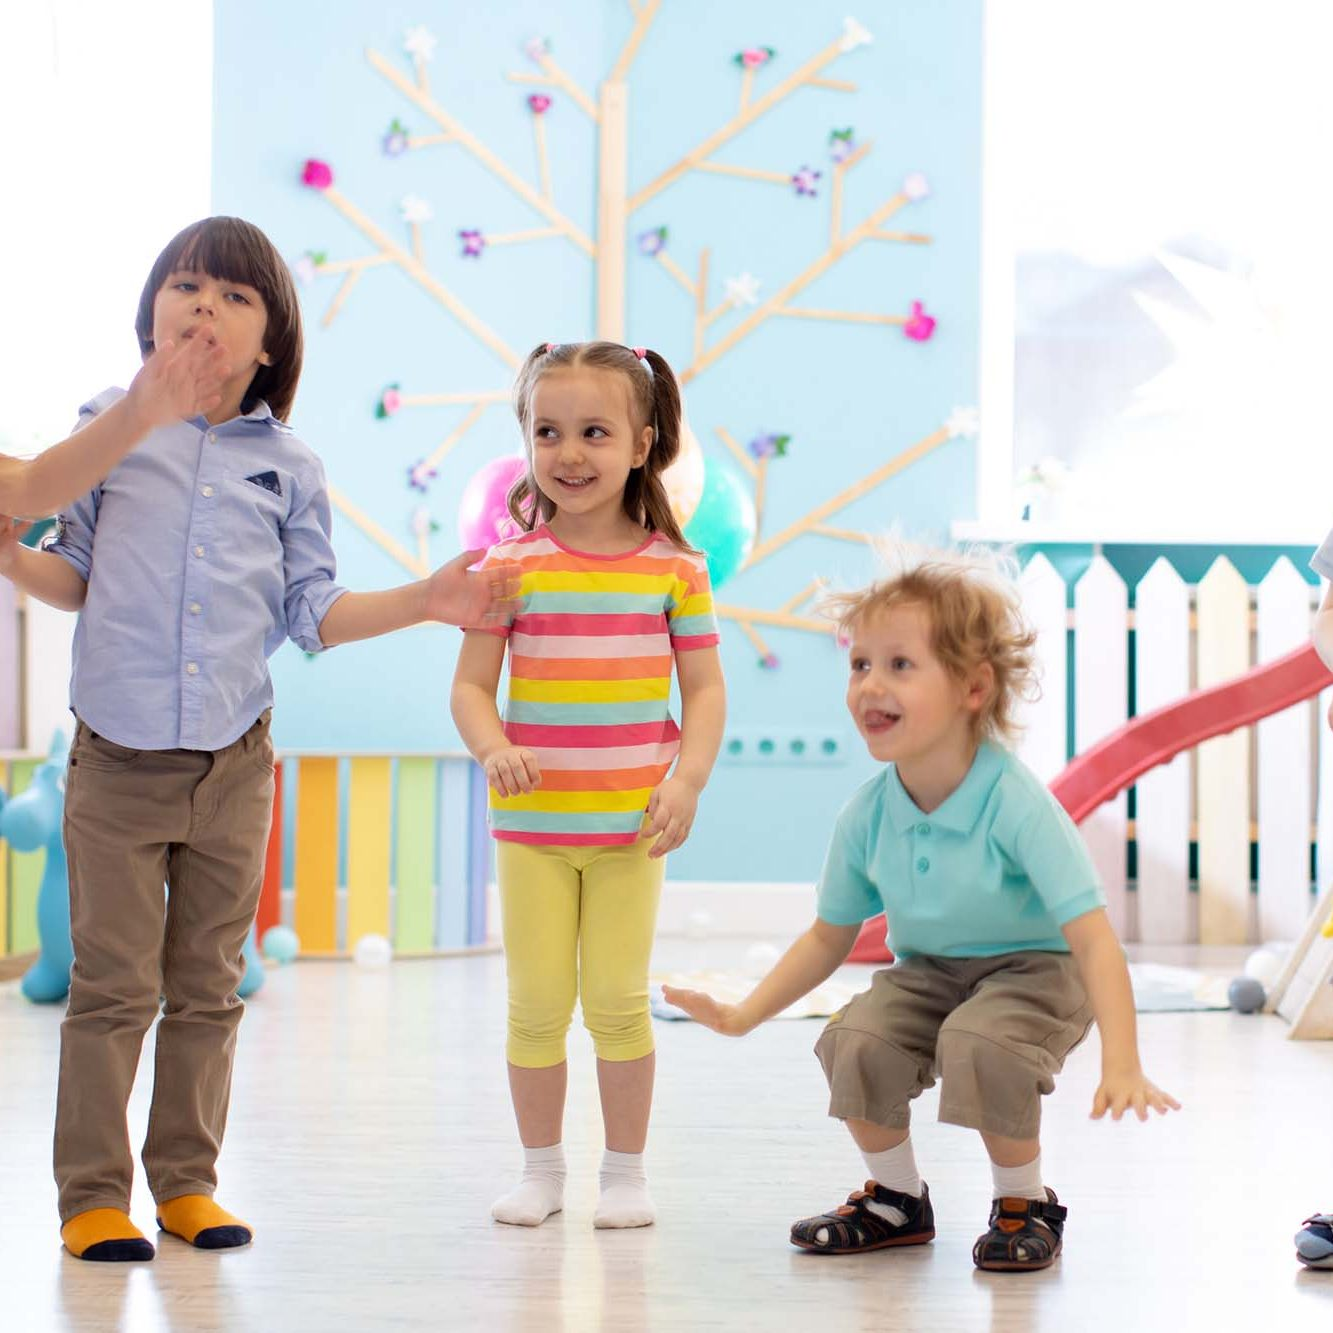 Group of happy children jumping indoor. Kids play together